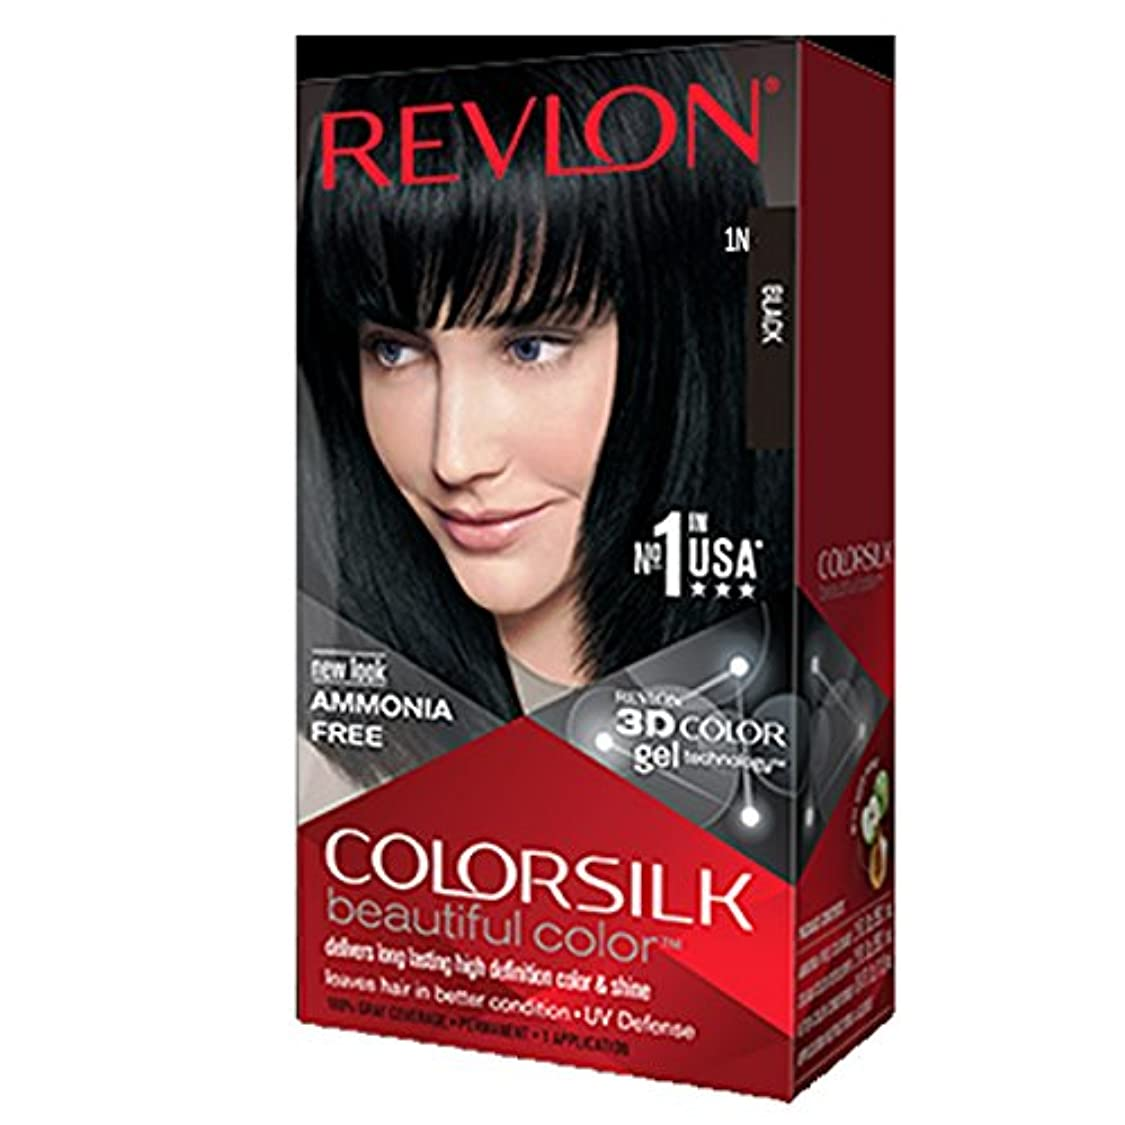 柔和支援グレートバリアリーフRevlon Colorsilk Hair Color with 3D Color Gel Technology Black 1N